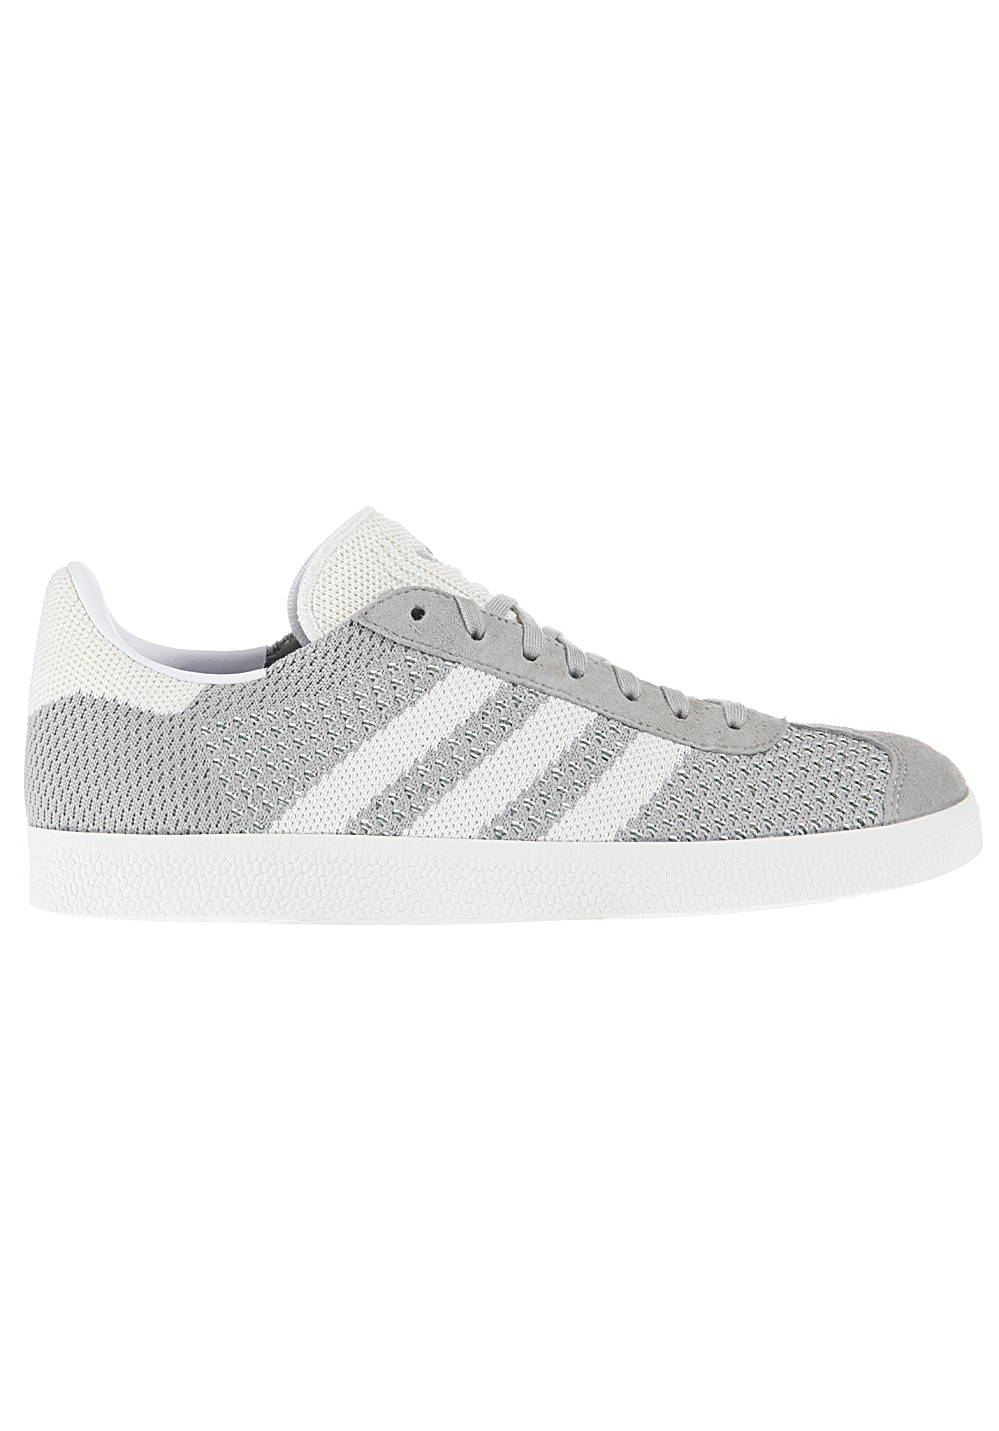 Originals Sneakers Gazelle Adidas Primeknit Grey nN0wm8